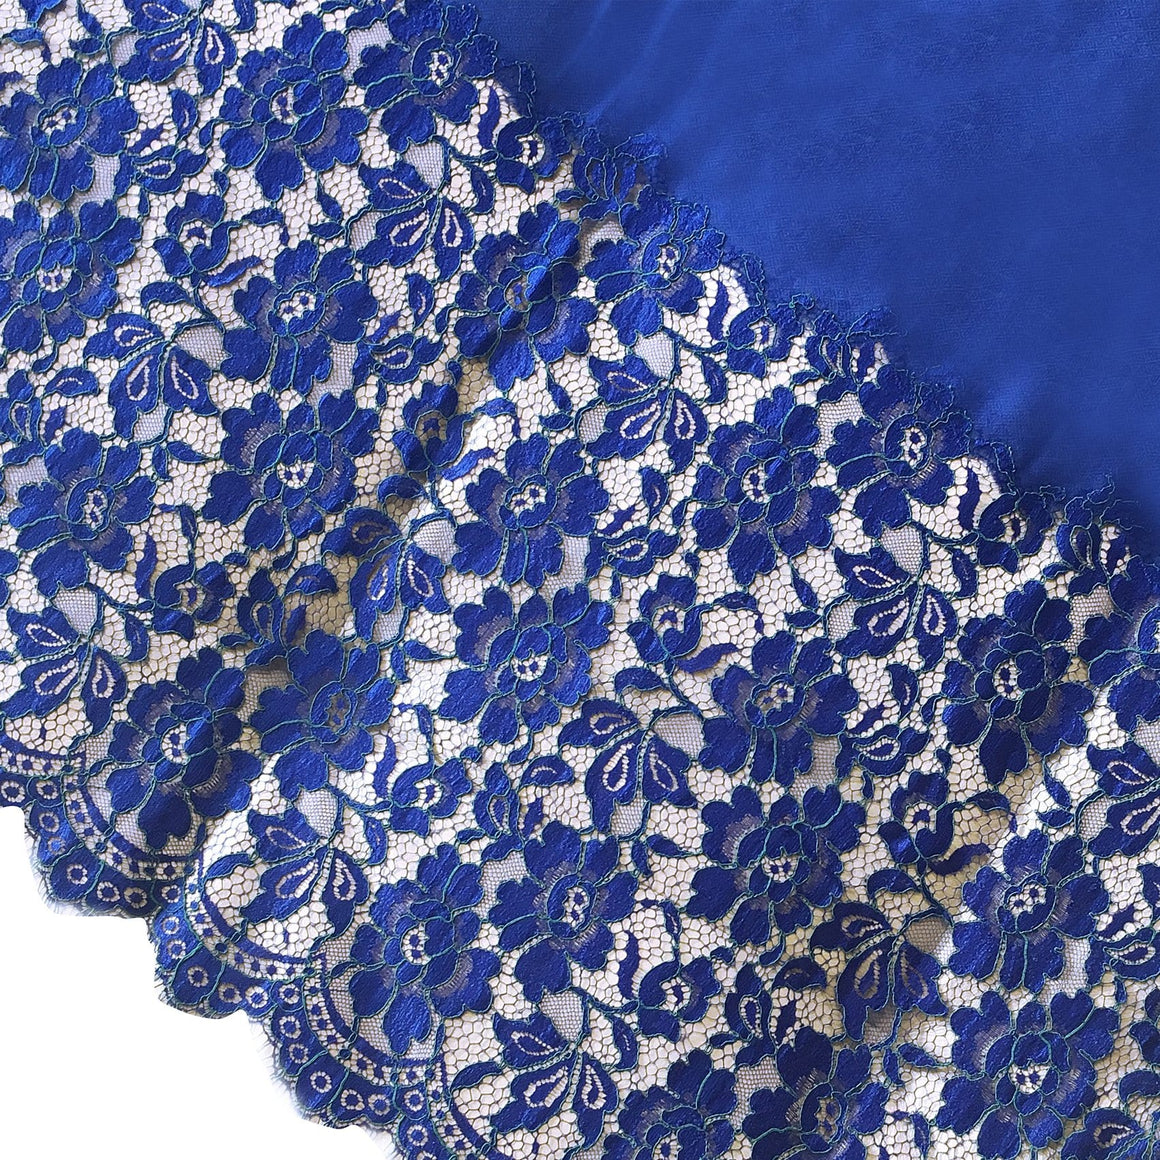 Amishi - Royal Blue Luxury Lace Scarf